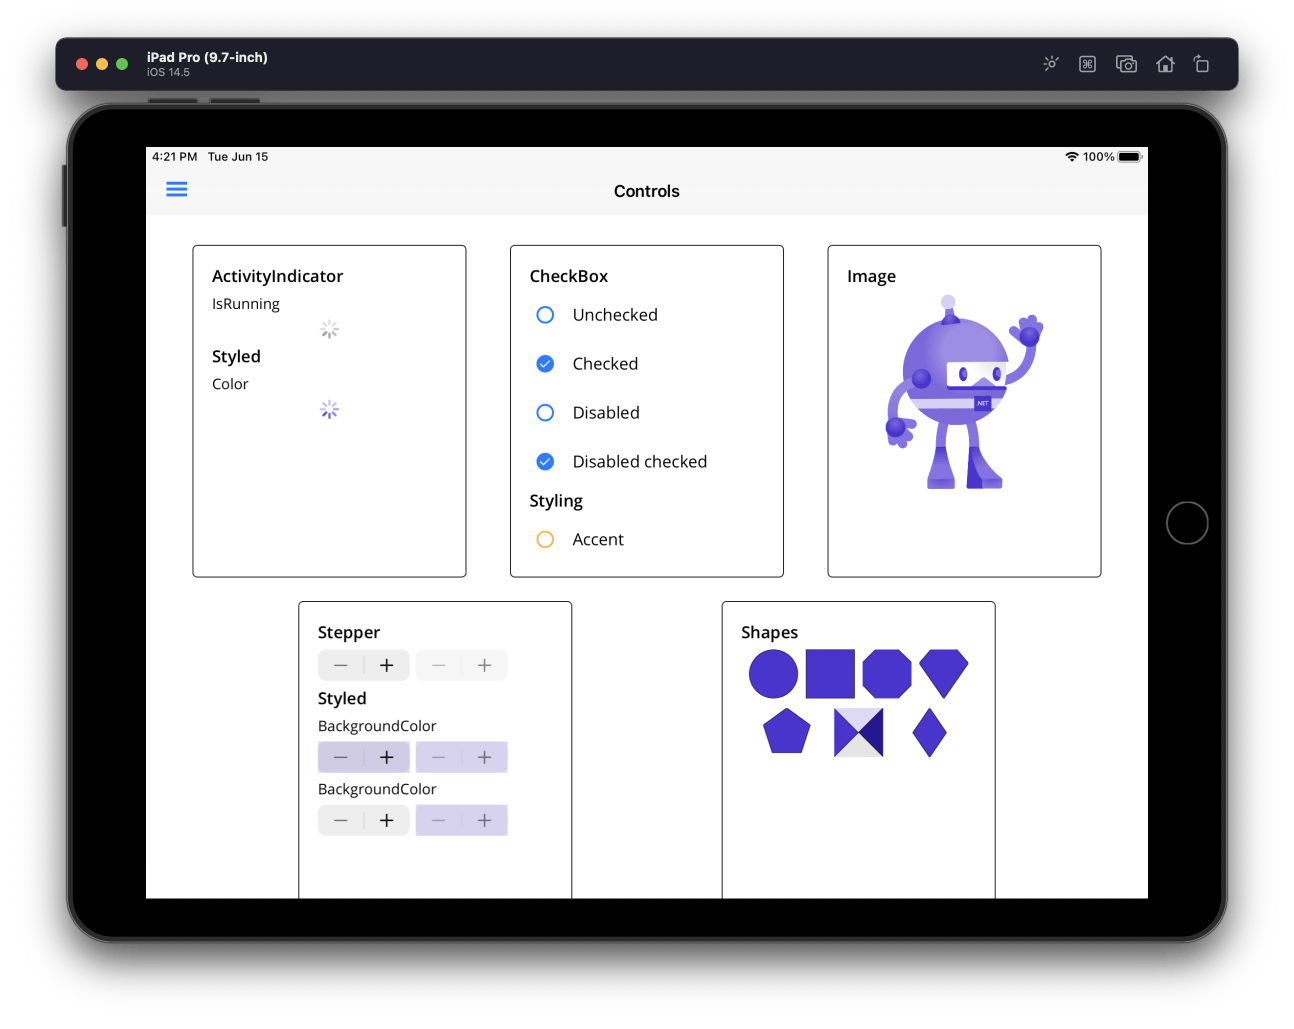 Maui Preview 5 controls: ActivityIndicator, CheckBox, Image, Stepper, Shapes.